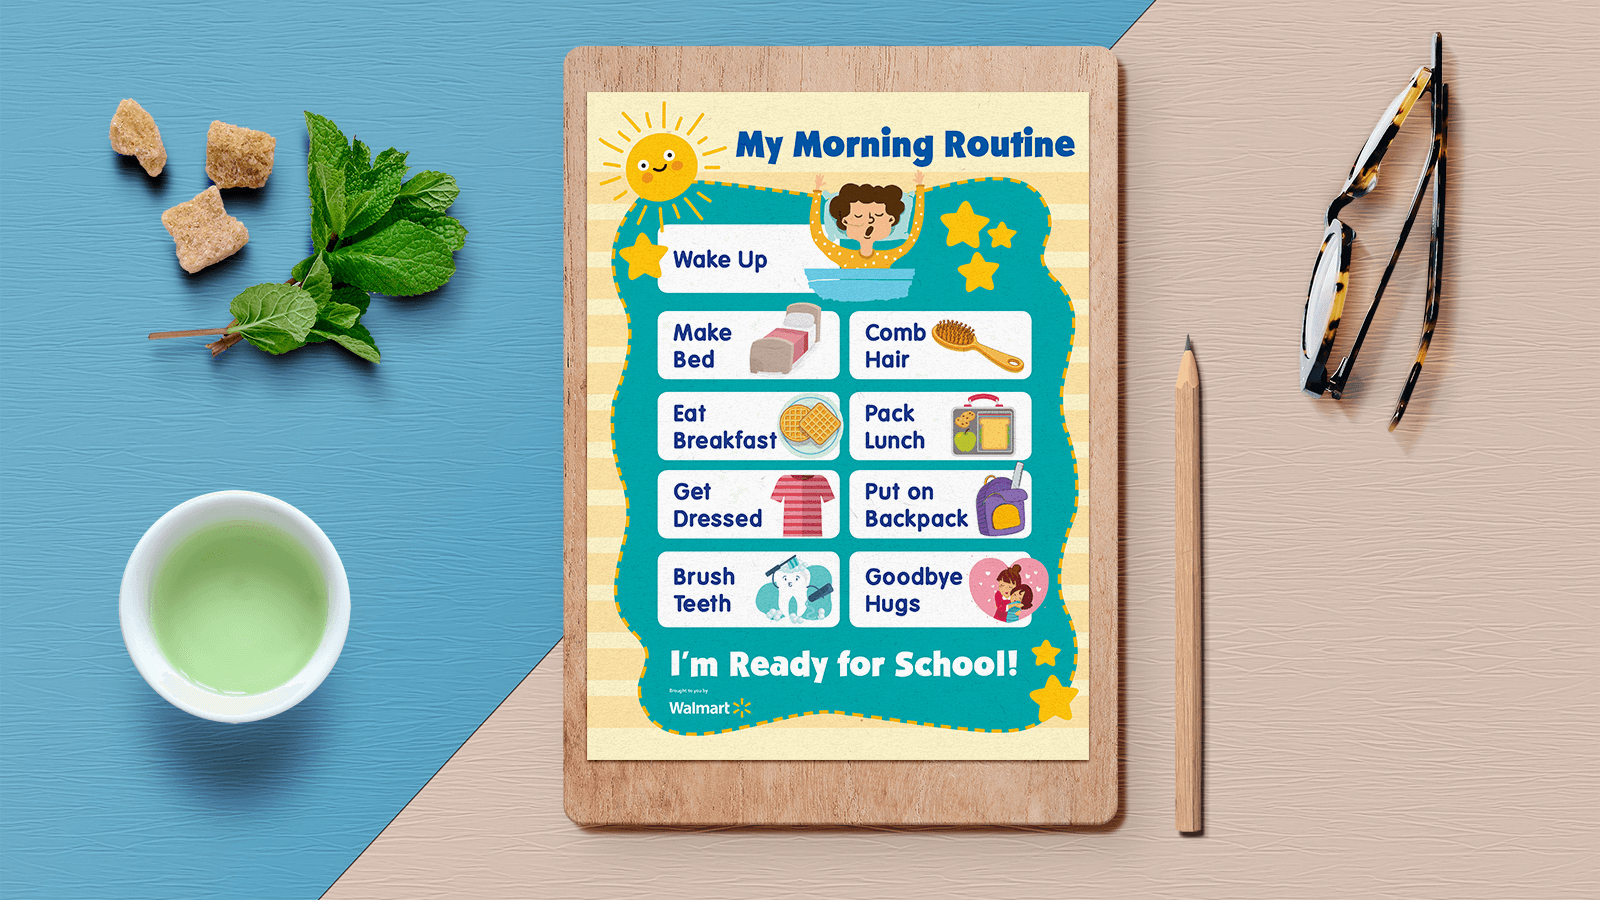 Student Activity Sheet Design